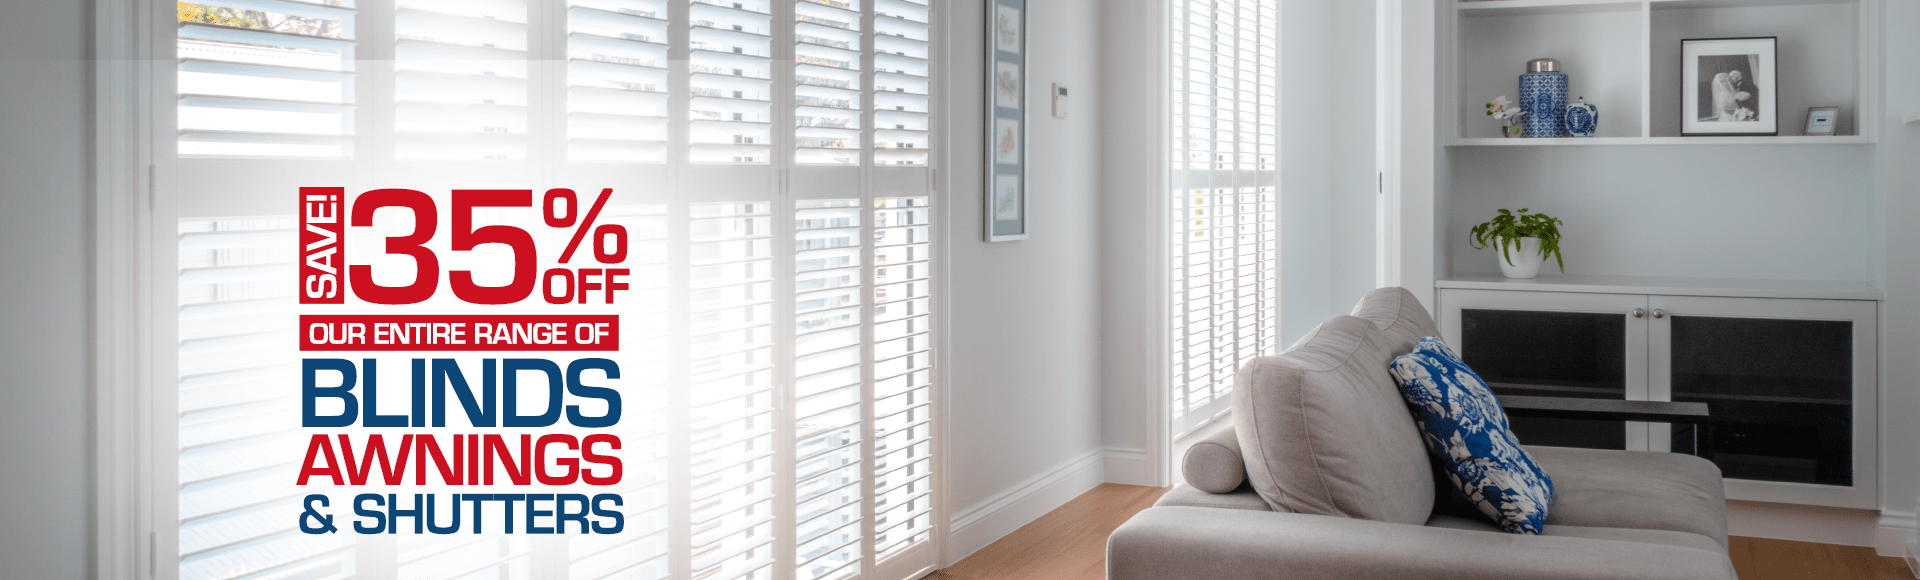 Blinds Toowoomba Blinds And Curtains Shops In Brisbane Sunshine Coast Image Blinds